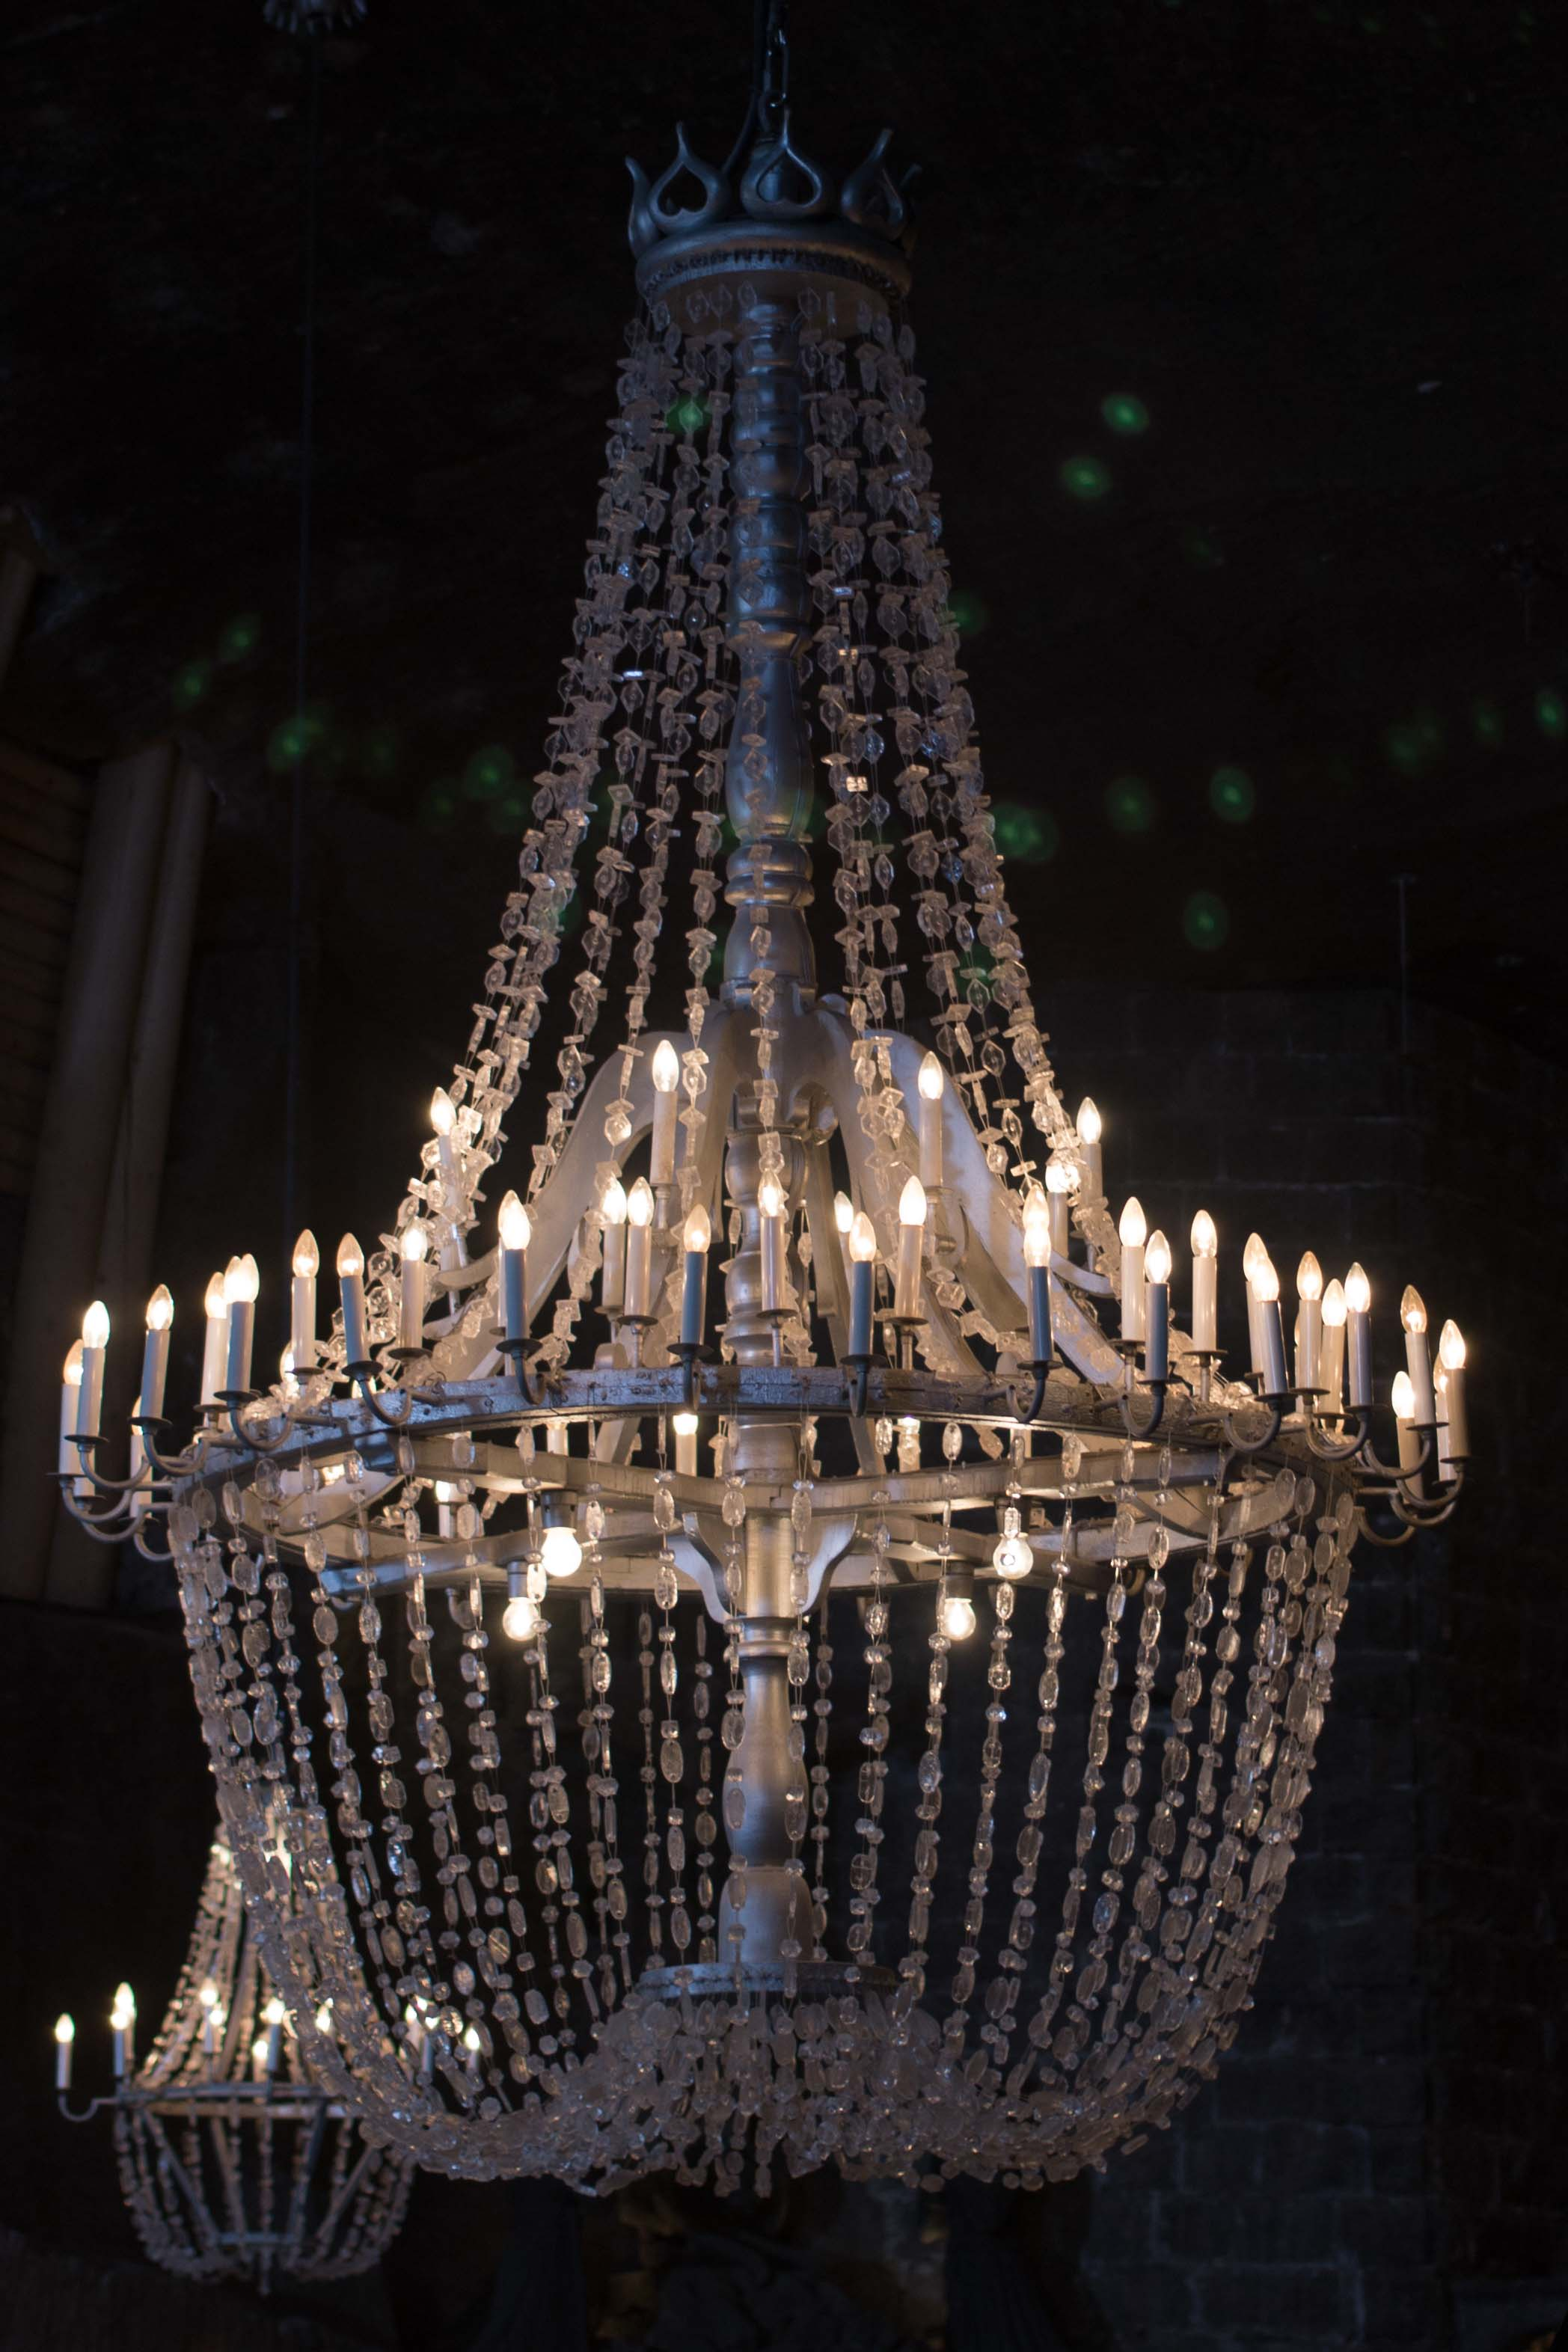 Chandelier made completely from Salt in St. Kinga's chapel